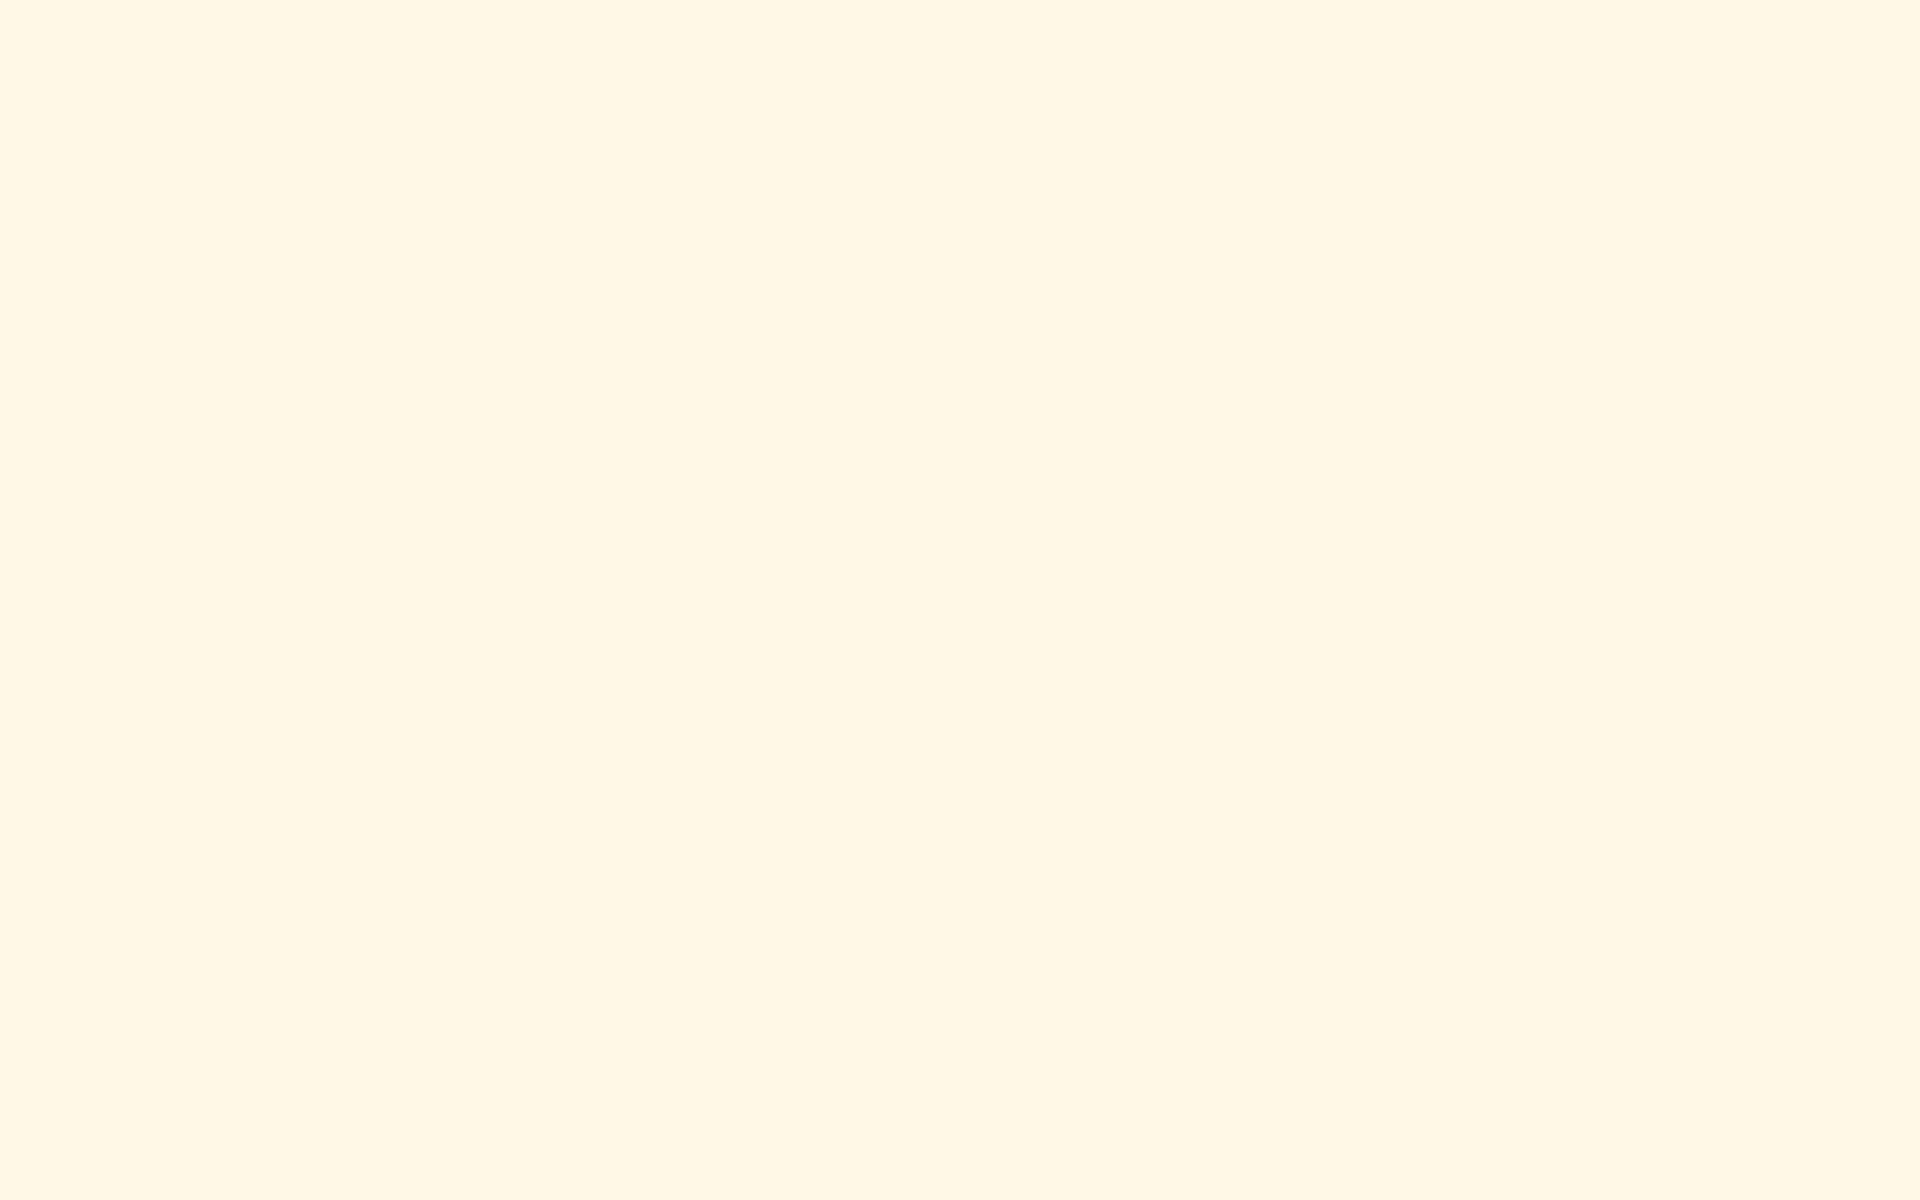 1920x1200 Cosmic Latte Solid Color Background